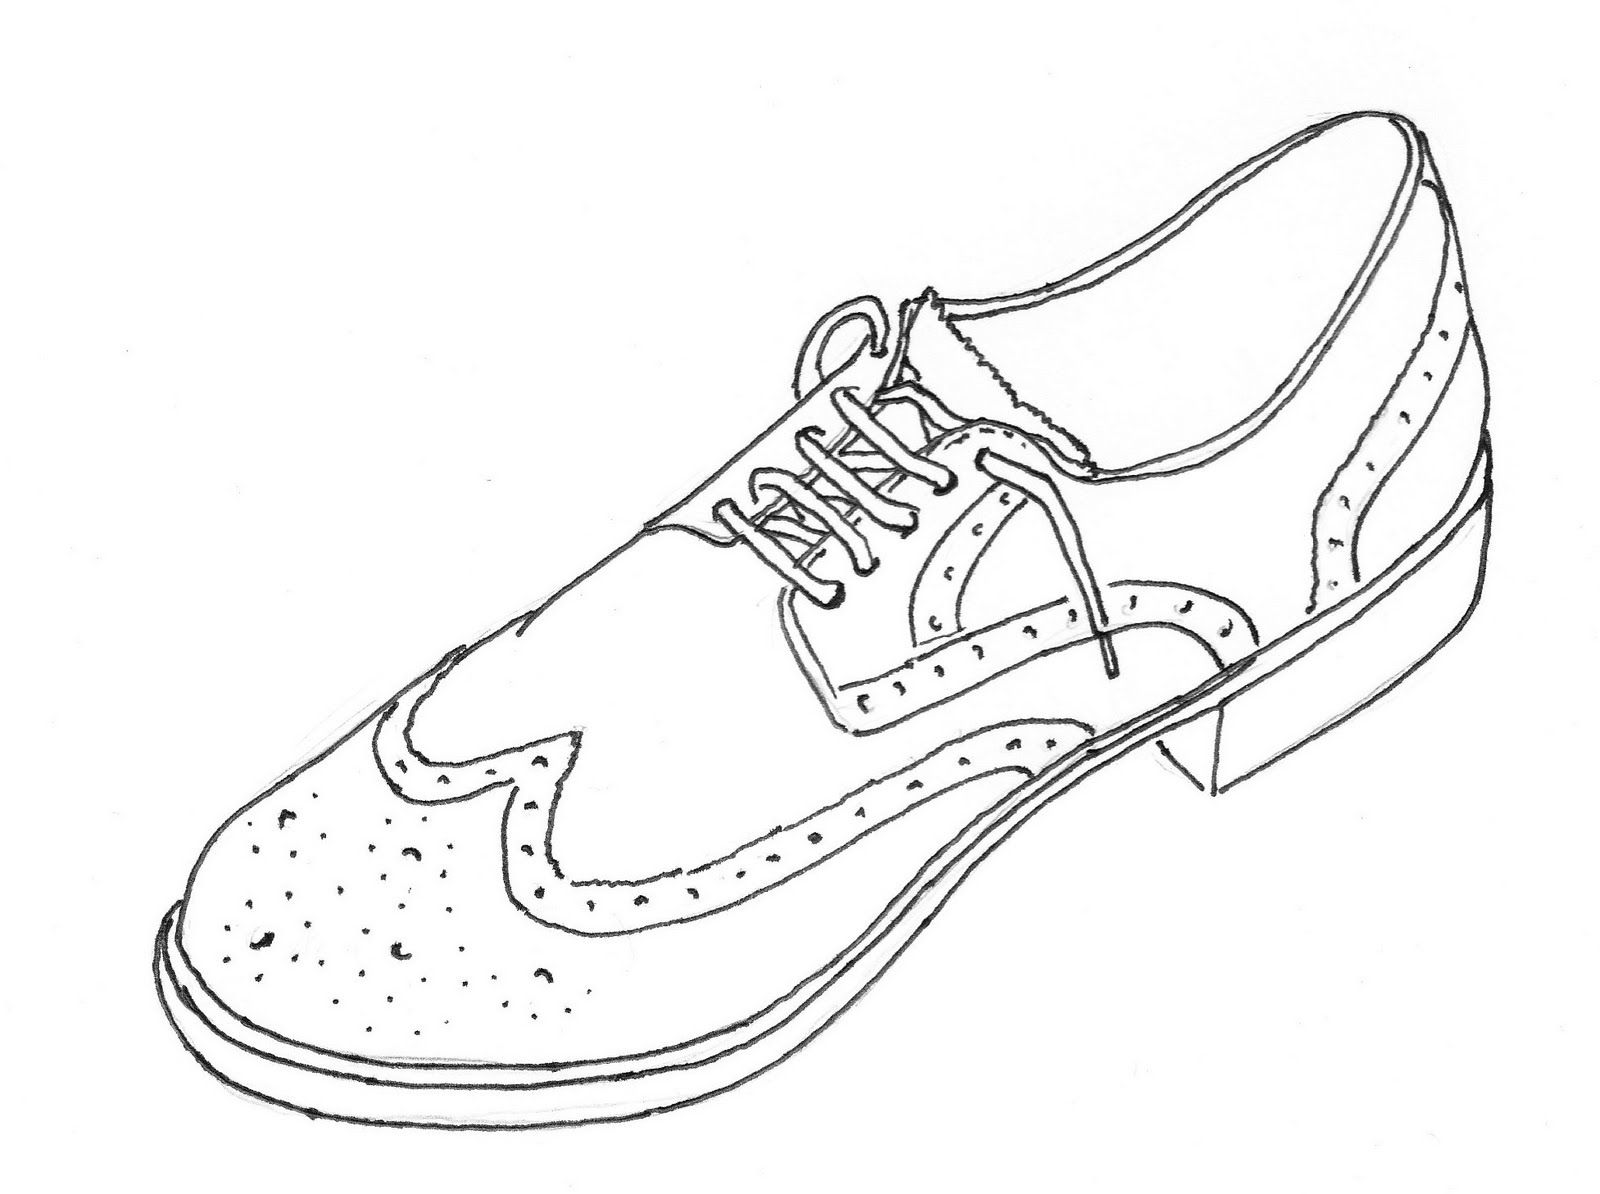 drawing of shoes image how to draw formal shoes sketch drawing of a pair of image shoes drawing of